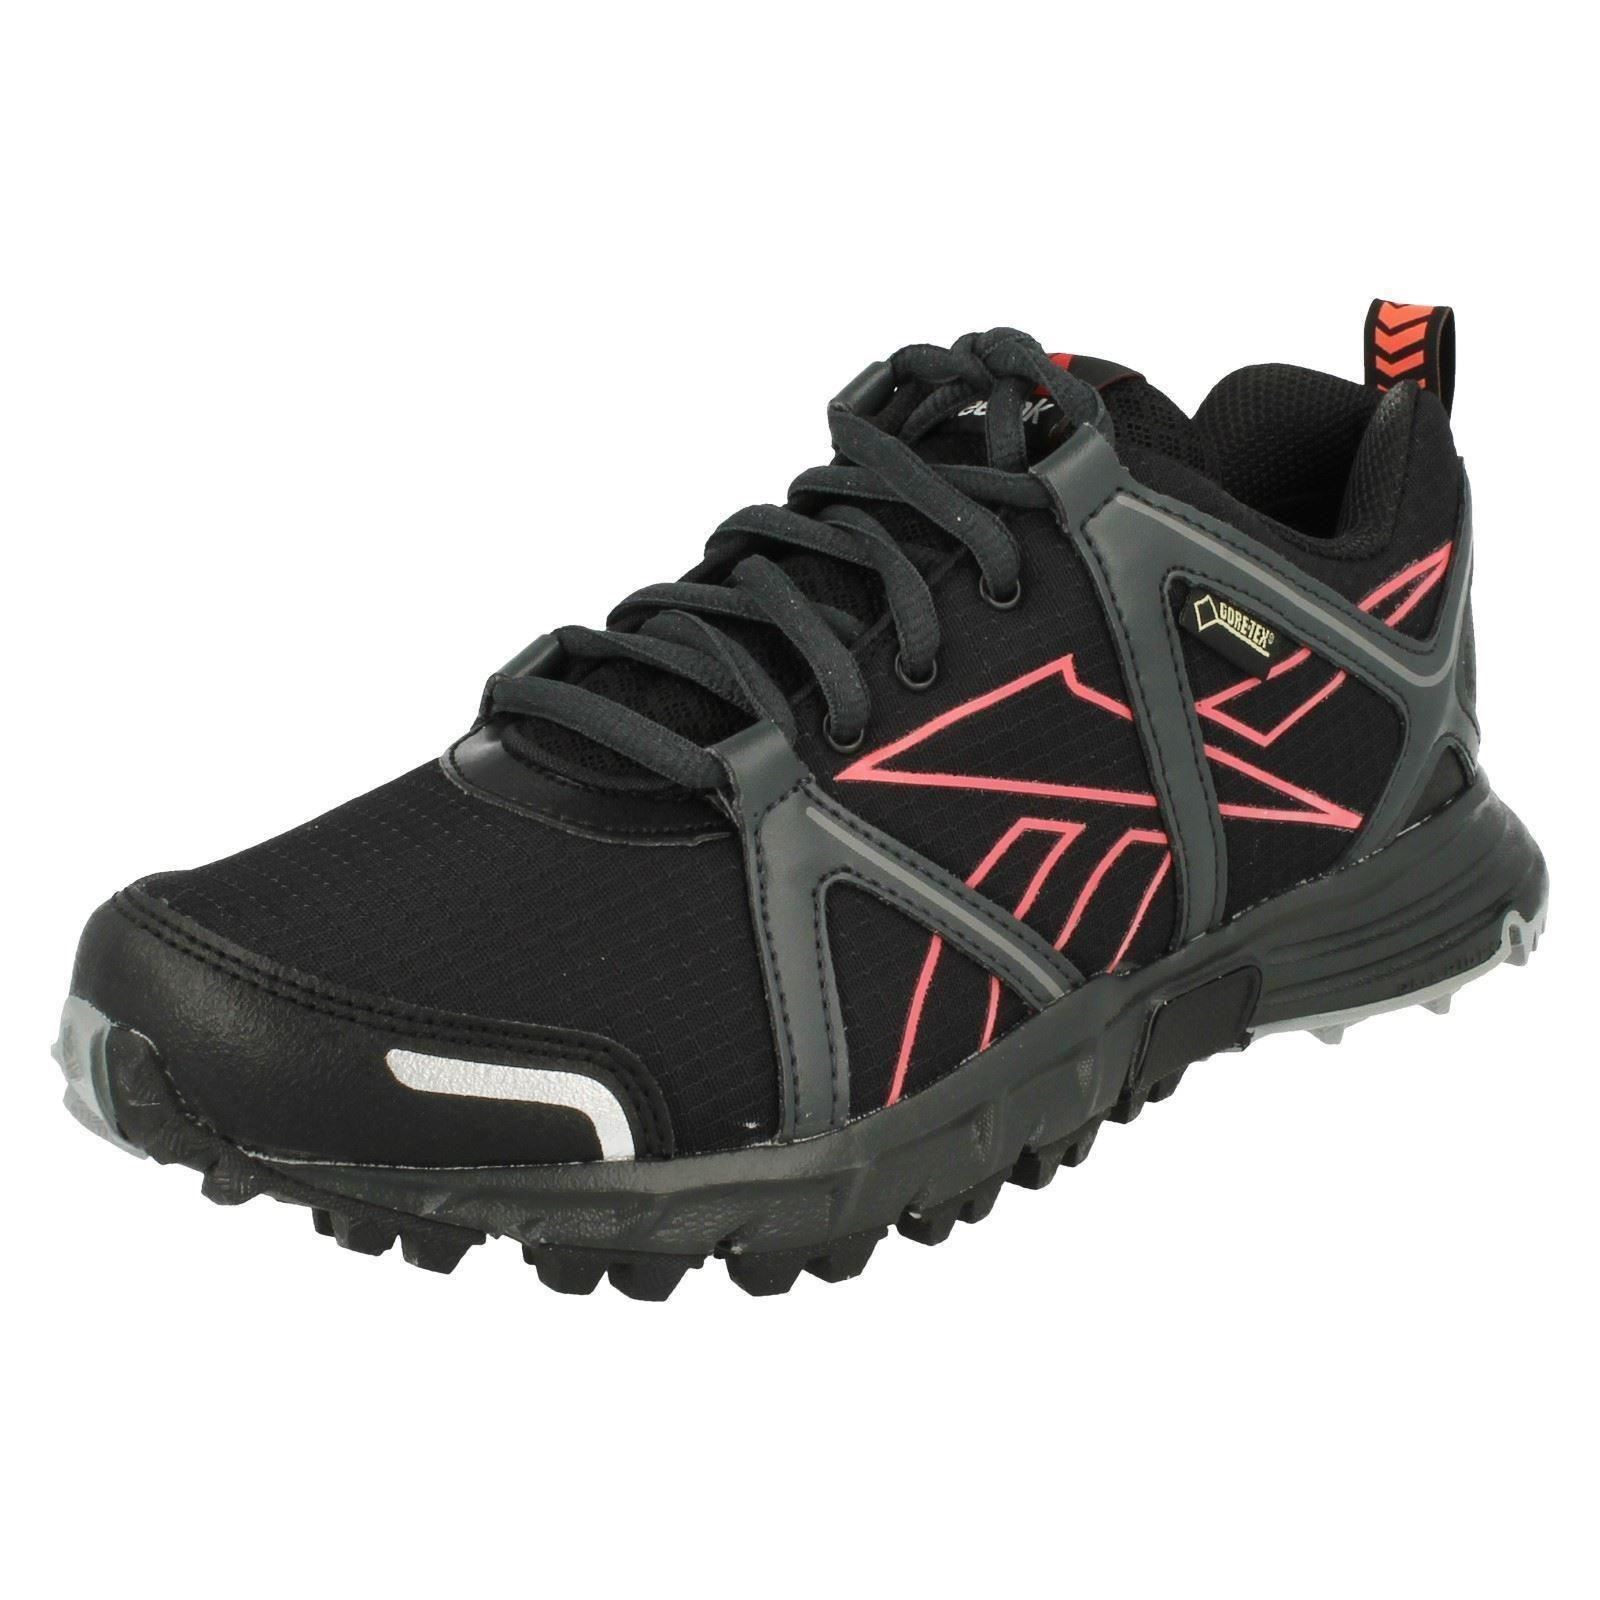 6b89e7a89c548e ... Lace up Trainers One Sawcut GTX UK 6 39. About this product. Picture 1  of 9  Picture 2 of 9 ...